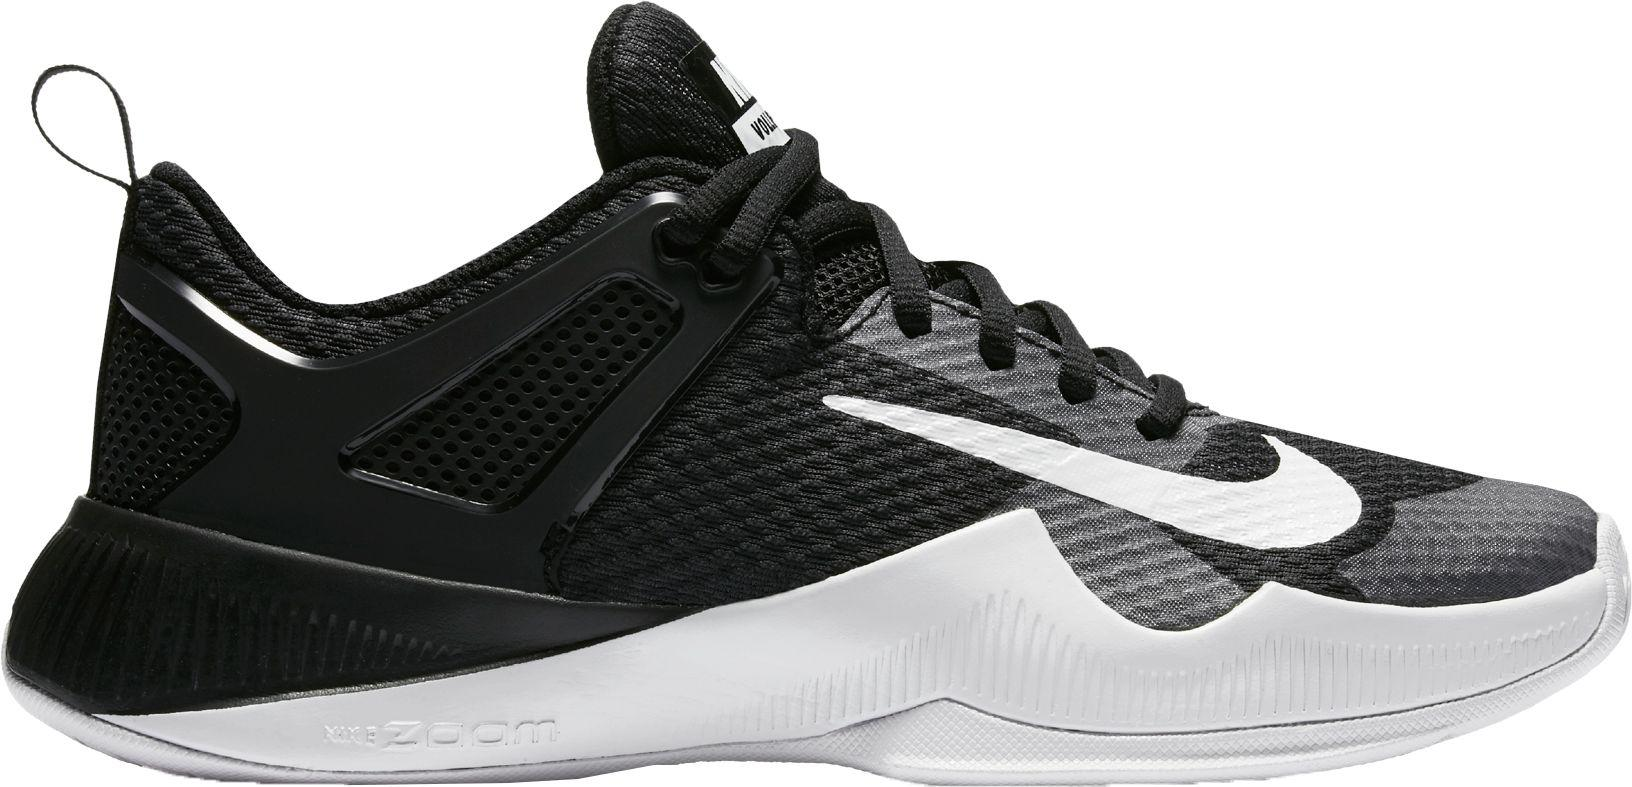 cheaper 7db55 34590 ... clearance nike black air zoom hyperace volleyball shoes lyst 97ecb 46a07